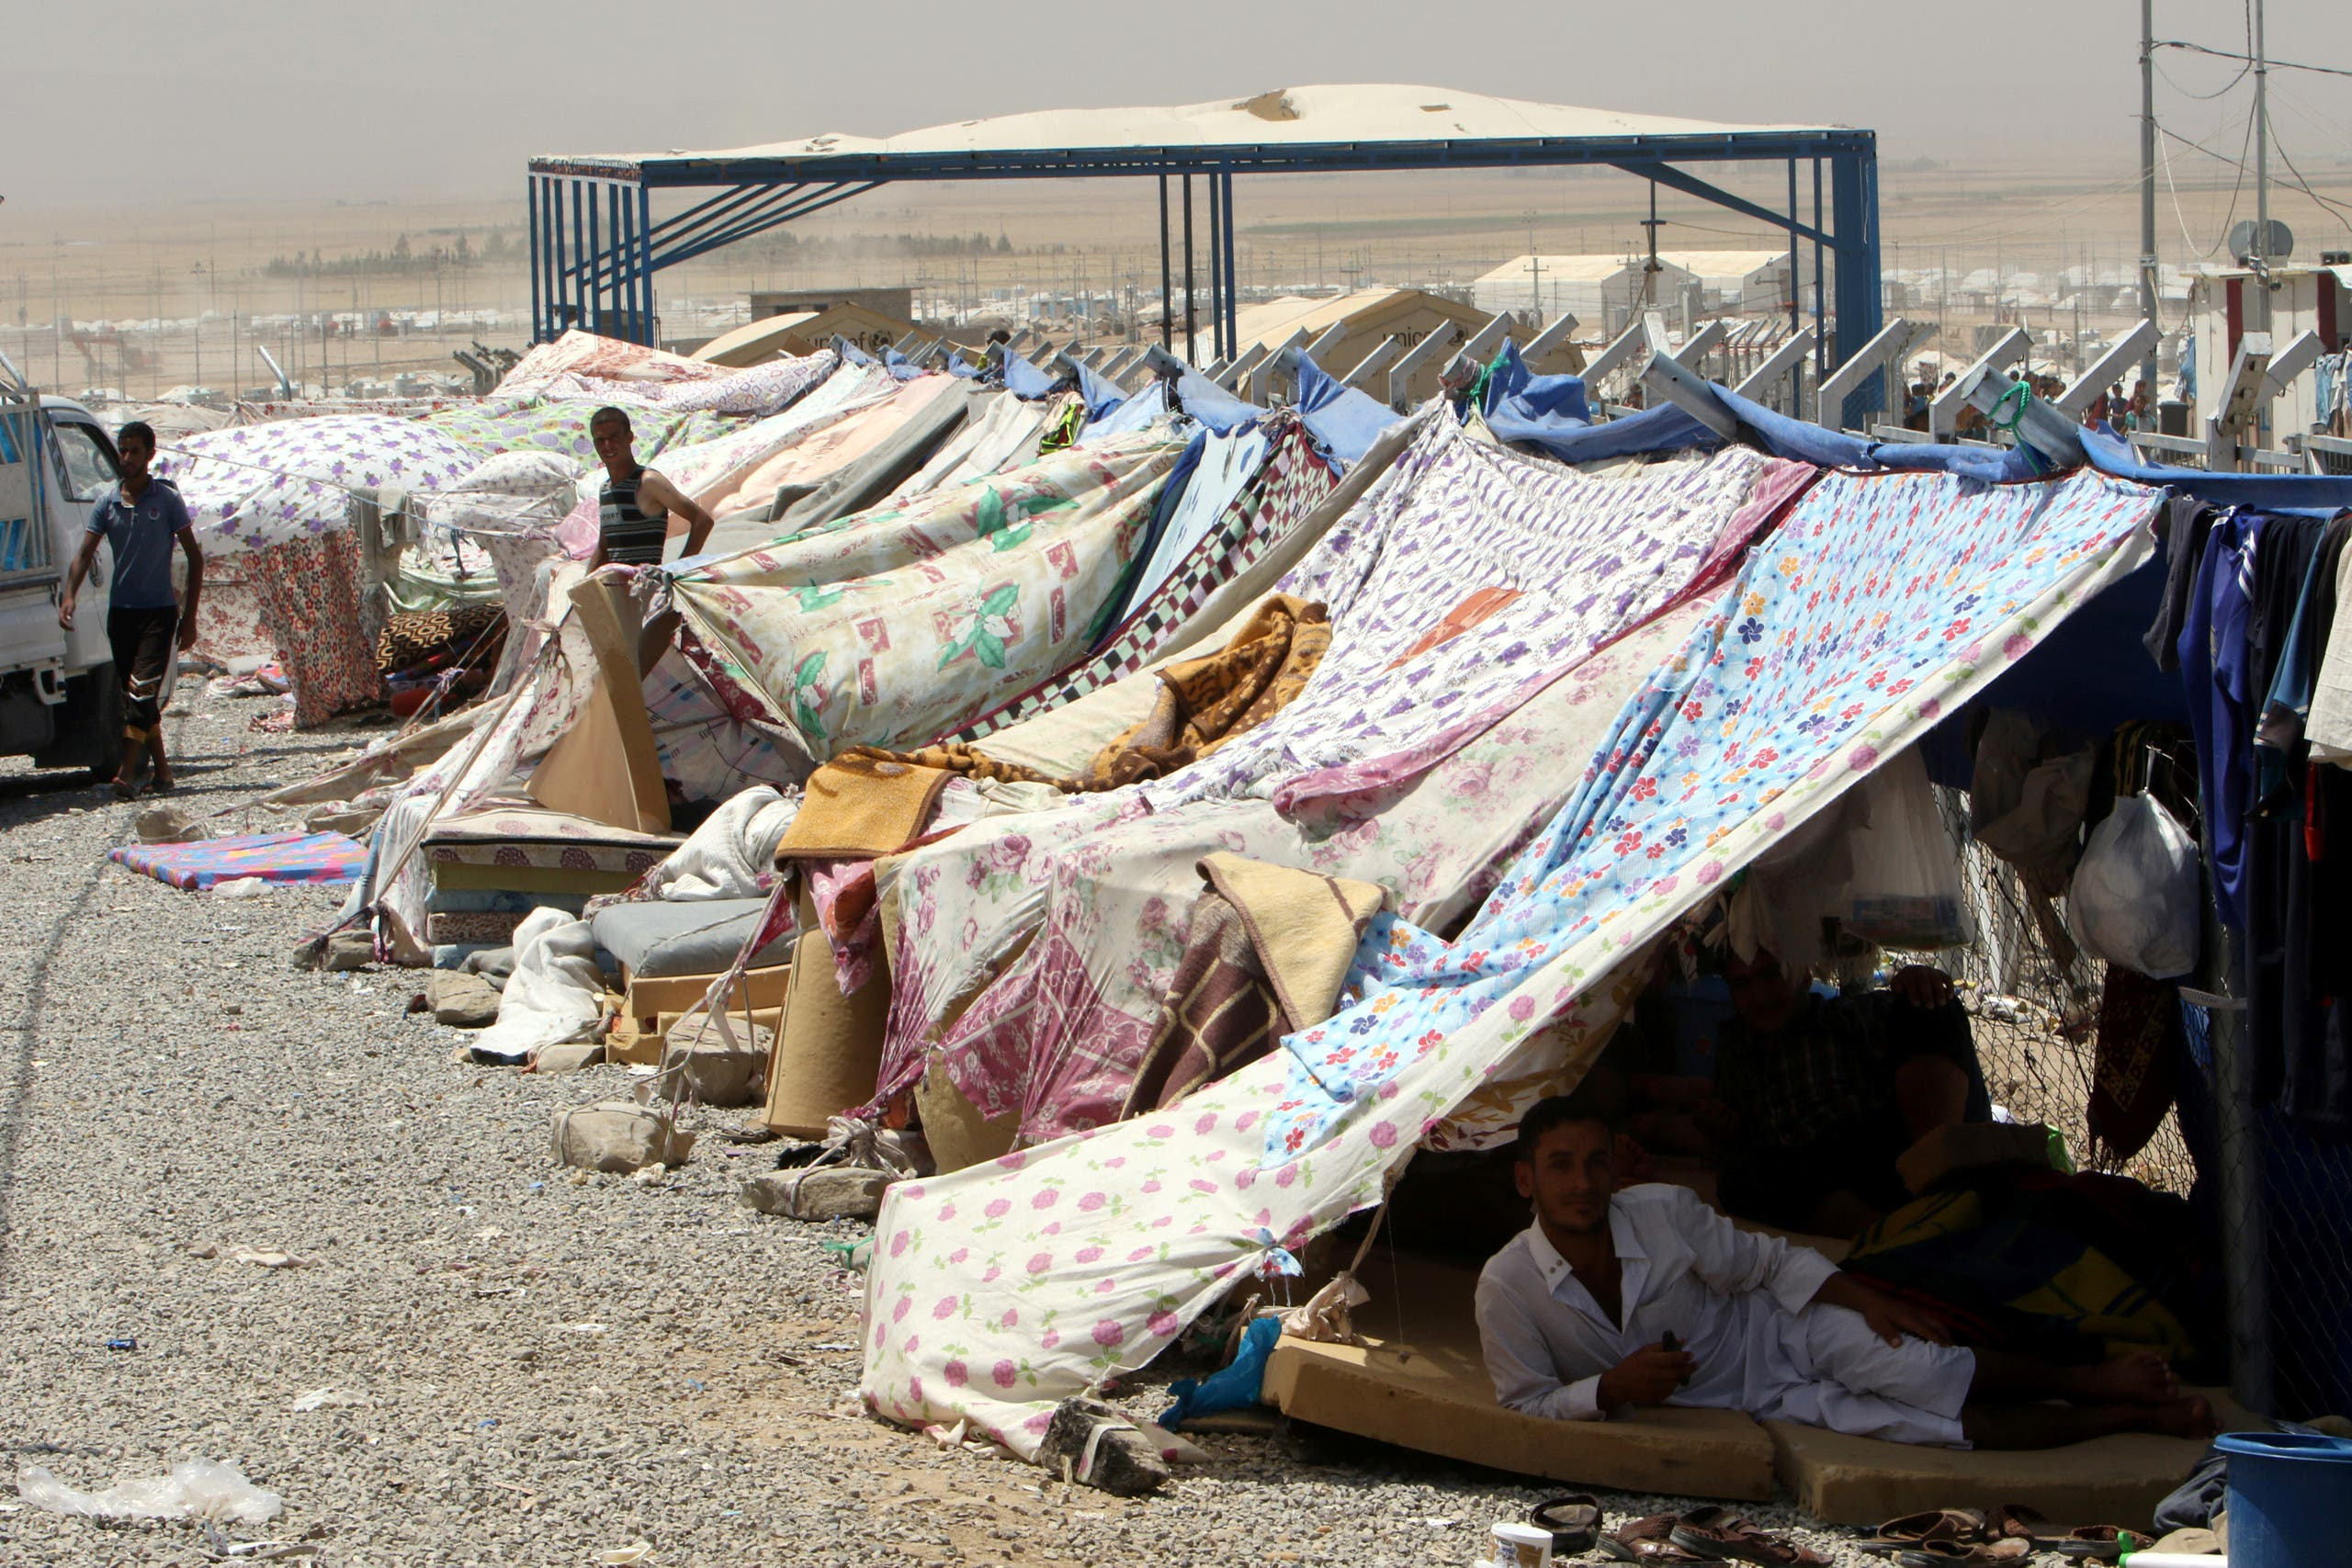 Displaced Iraqis in Makhmour camp (Reuters archives)